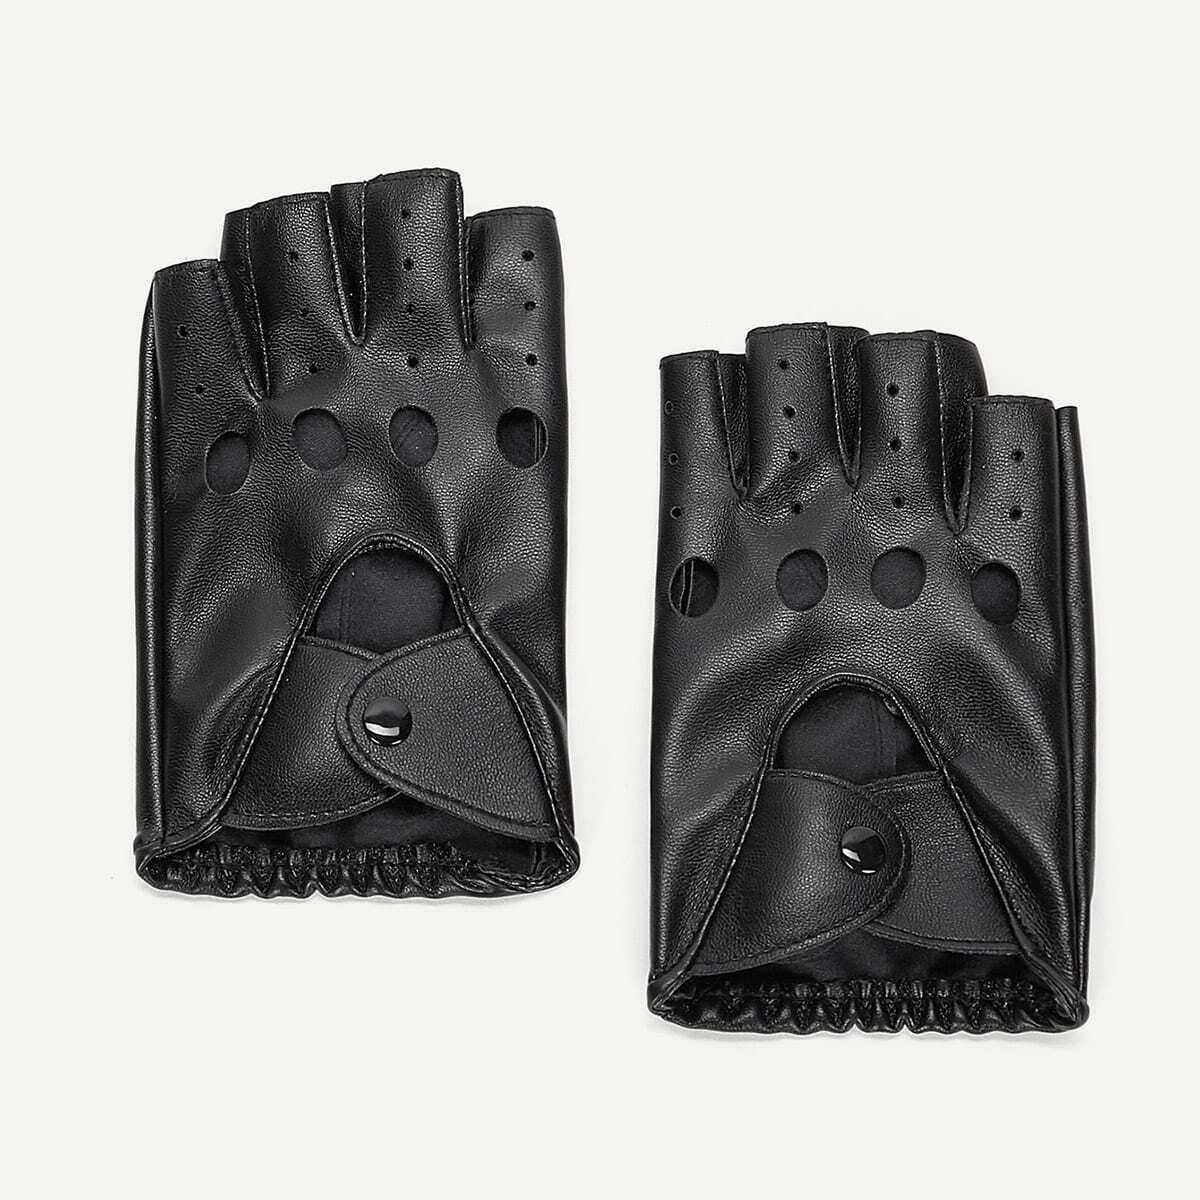 Guys Hollow Out Half Finger Gloves in Black by ROMWE on GOOFASH